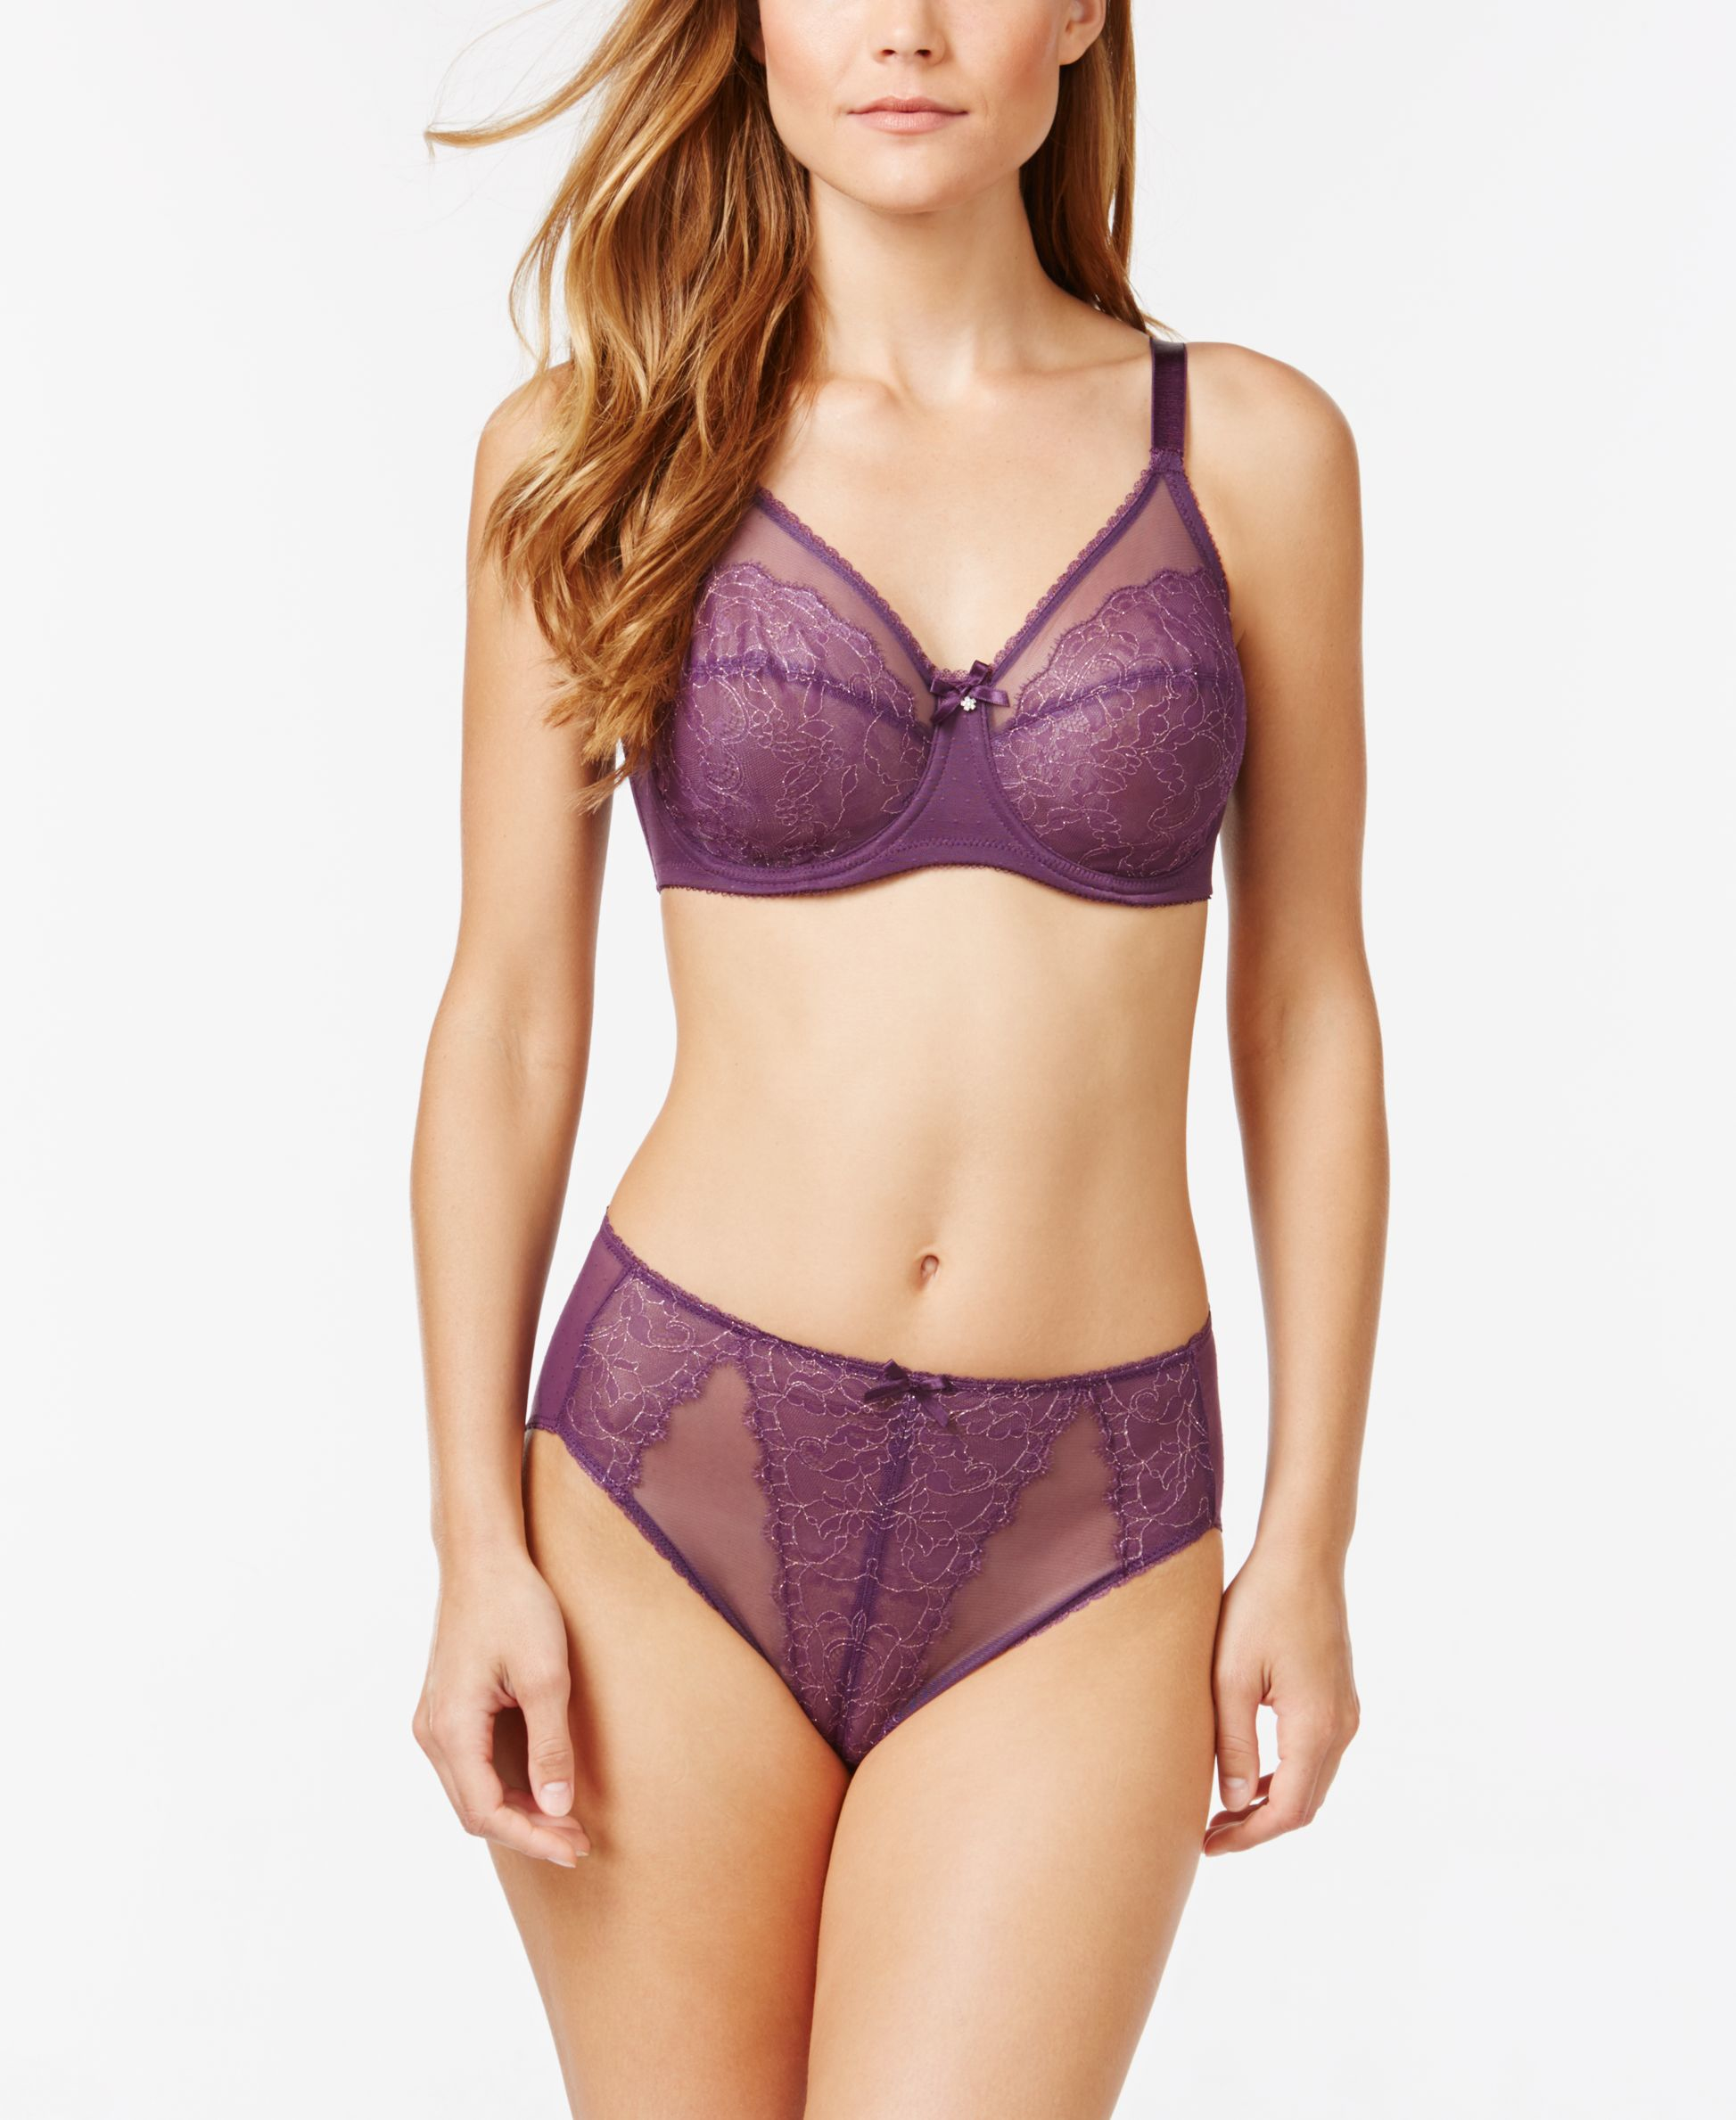 Wacoal Retro Chic Full-figure Underwire Bra 855186 in Purple | Lyst